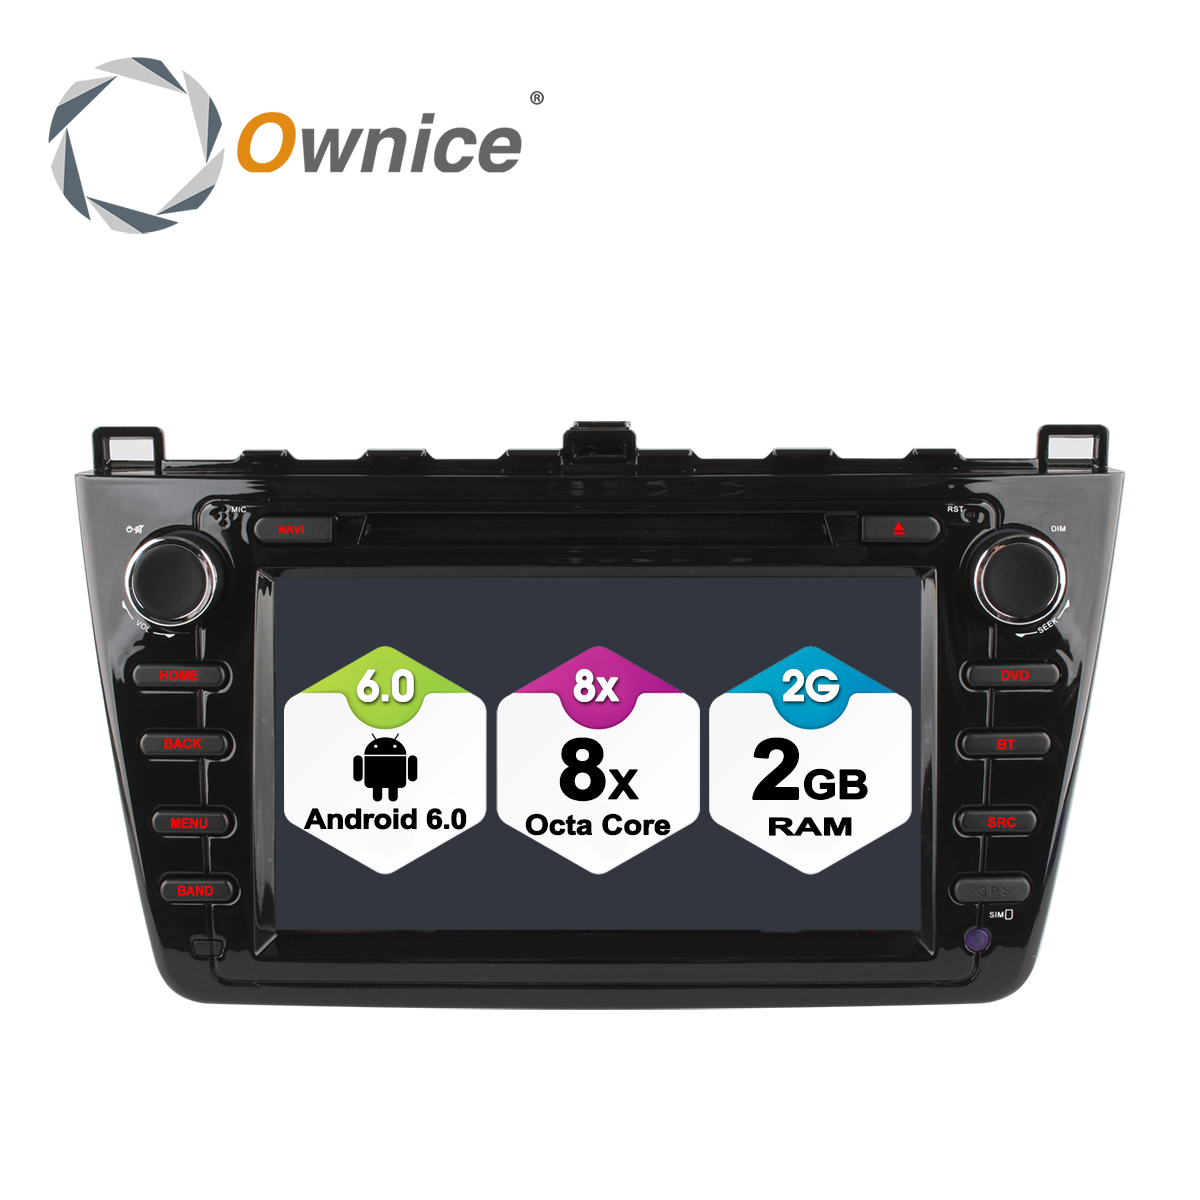 Ownice C500 Android <font><b>6</b></font>.0 Octa 8 Core 1024*600 Car DVD <font><b>GPS</b></font> <font><b>Navigation</b></font> for New <font><b>Mazda</b></font> <font><b>6</b></font> 2009 - 2011 2GB RAM 32GB ROM 4G SIM LTE image